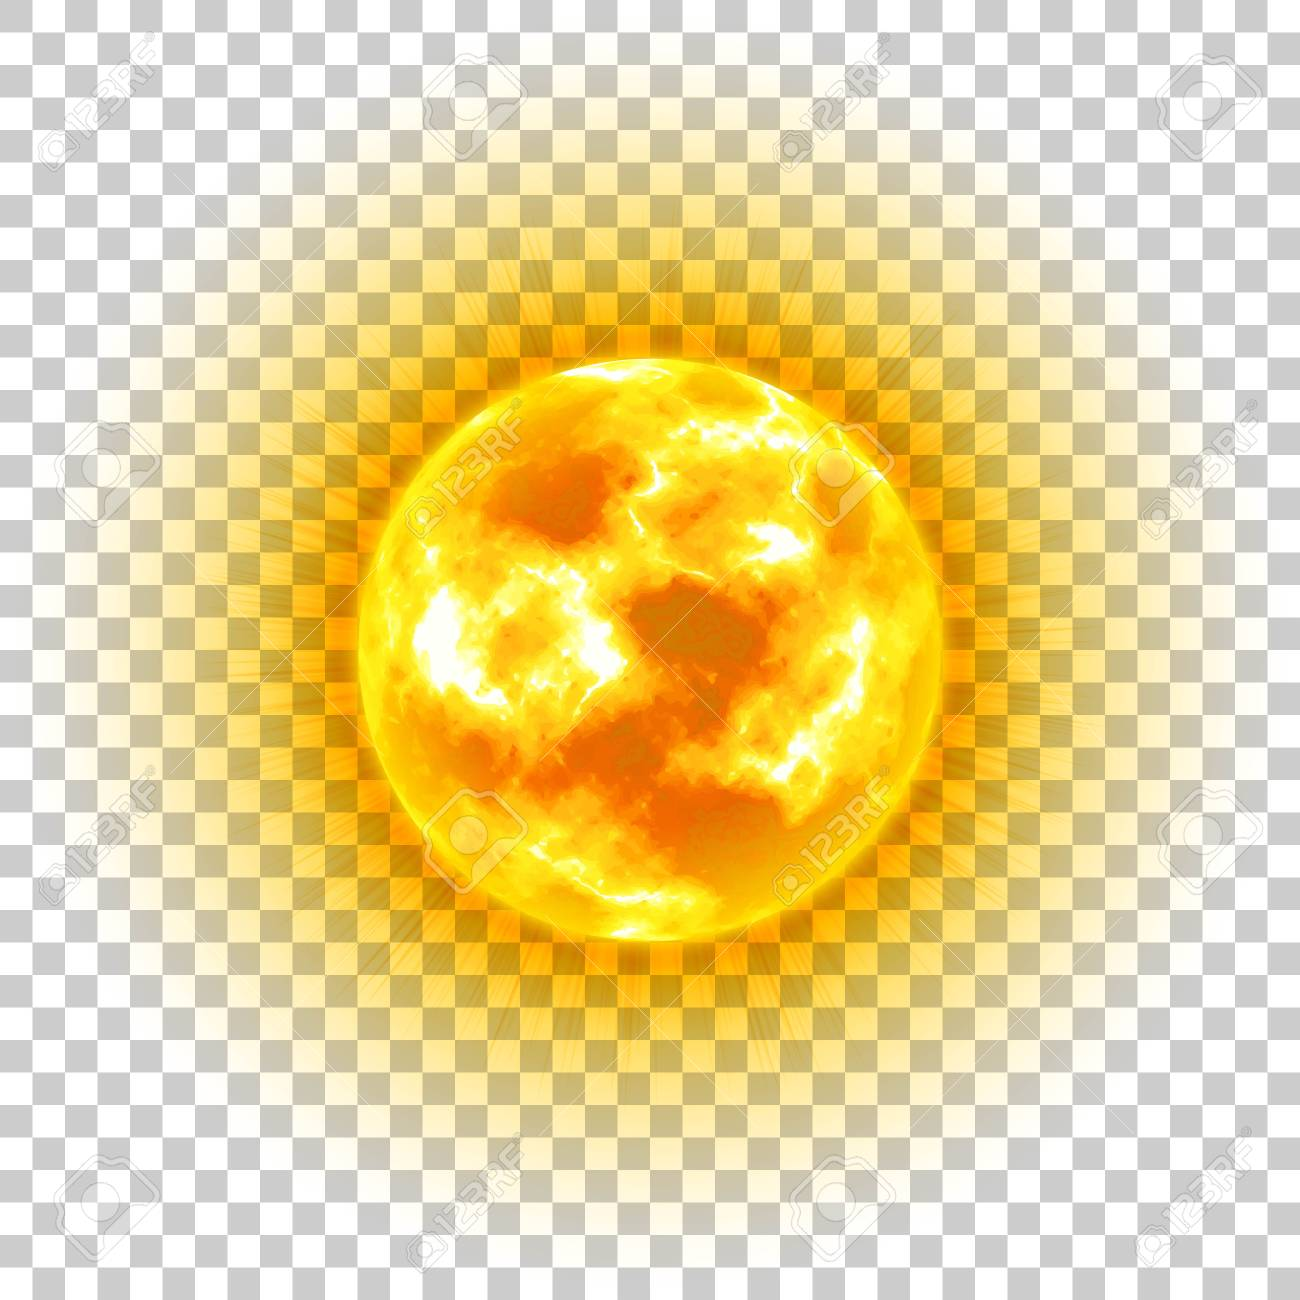 Sun, Transparent Background, Heavenly Bo #790670 - PNG